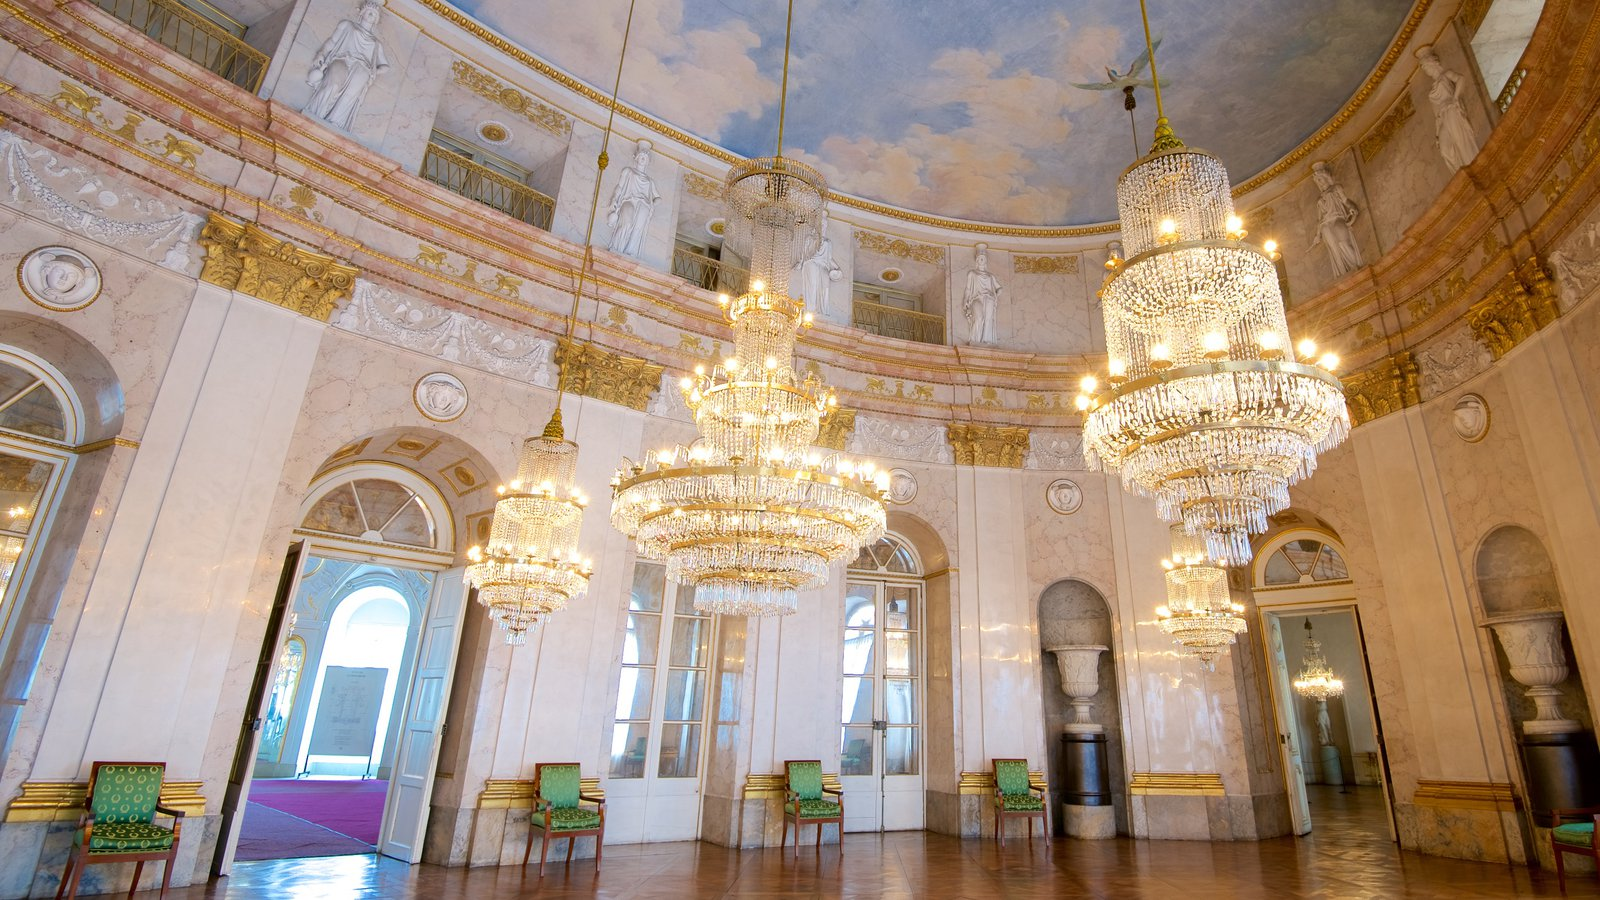 ludwigsburg palace pictures view photos images of ludwigsburg palace. Black Bedroom Furniture Sets. Home Design Ideas